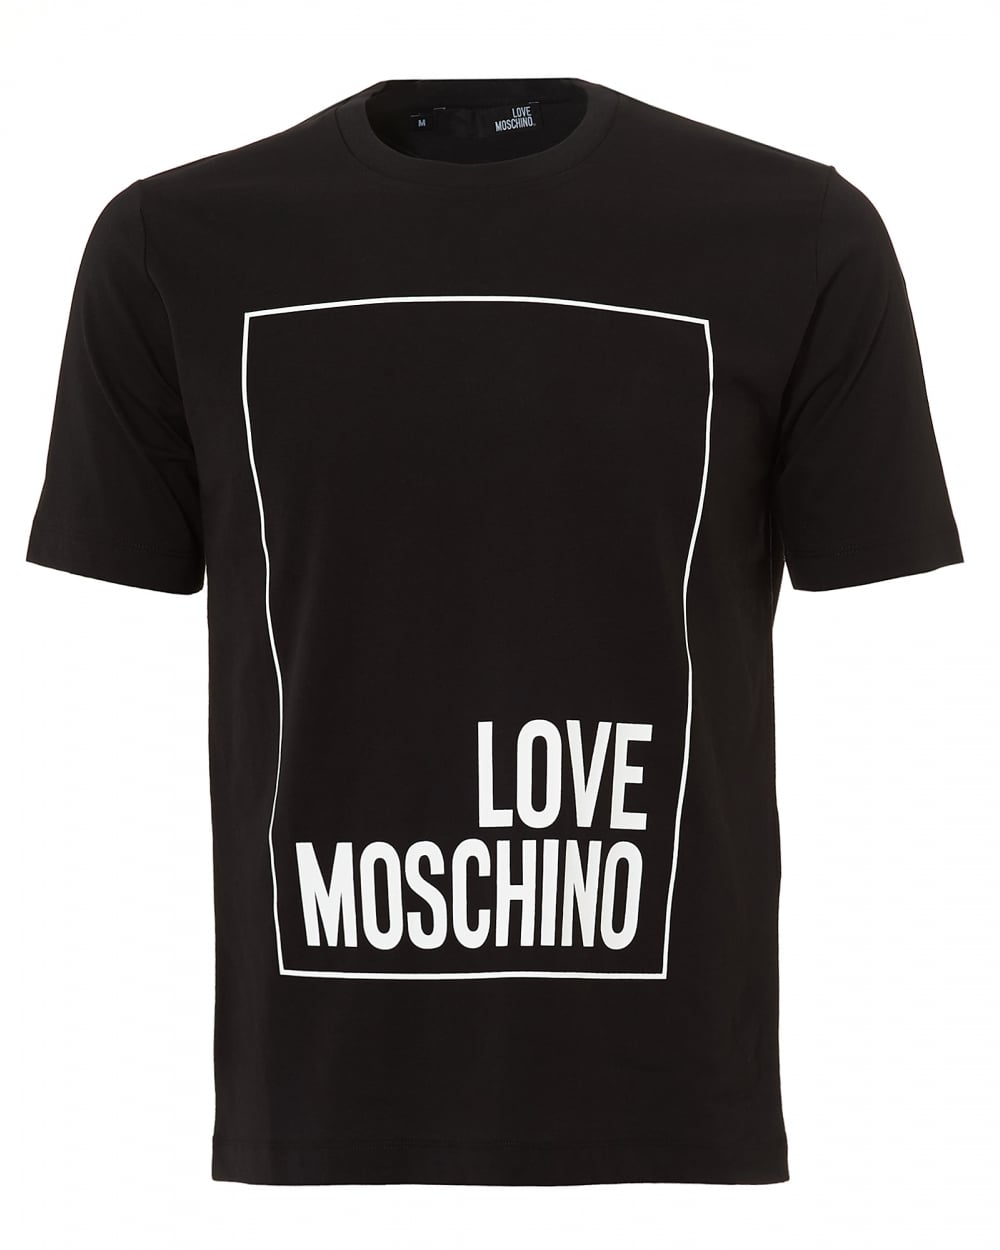 love moschino mens boxed logo t shirt regular fit black tee. Black Bedroom Furniture Sets. Home Design Ideas